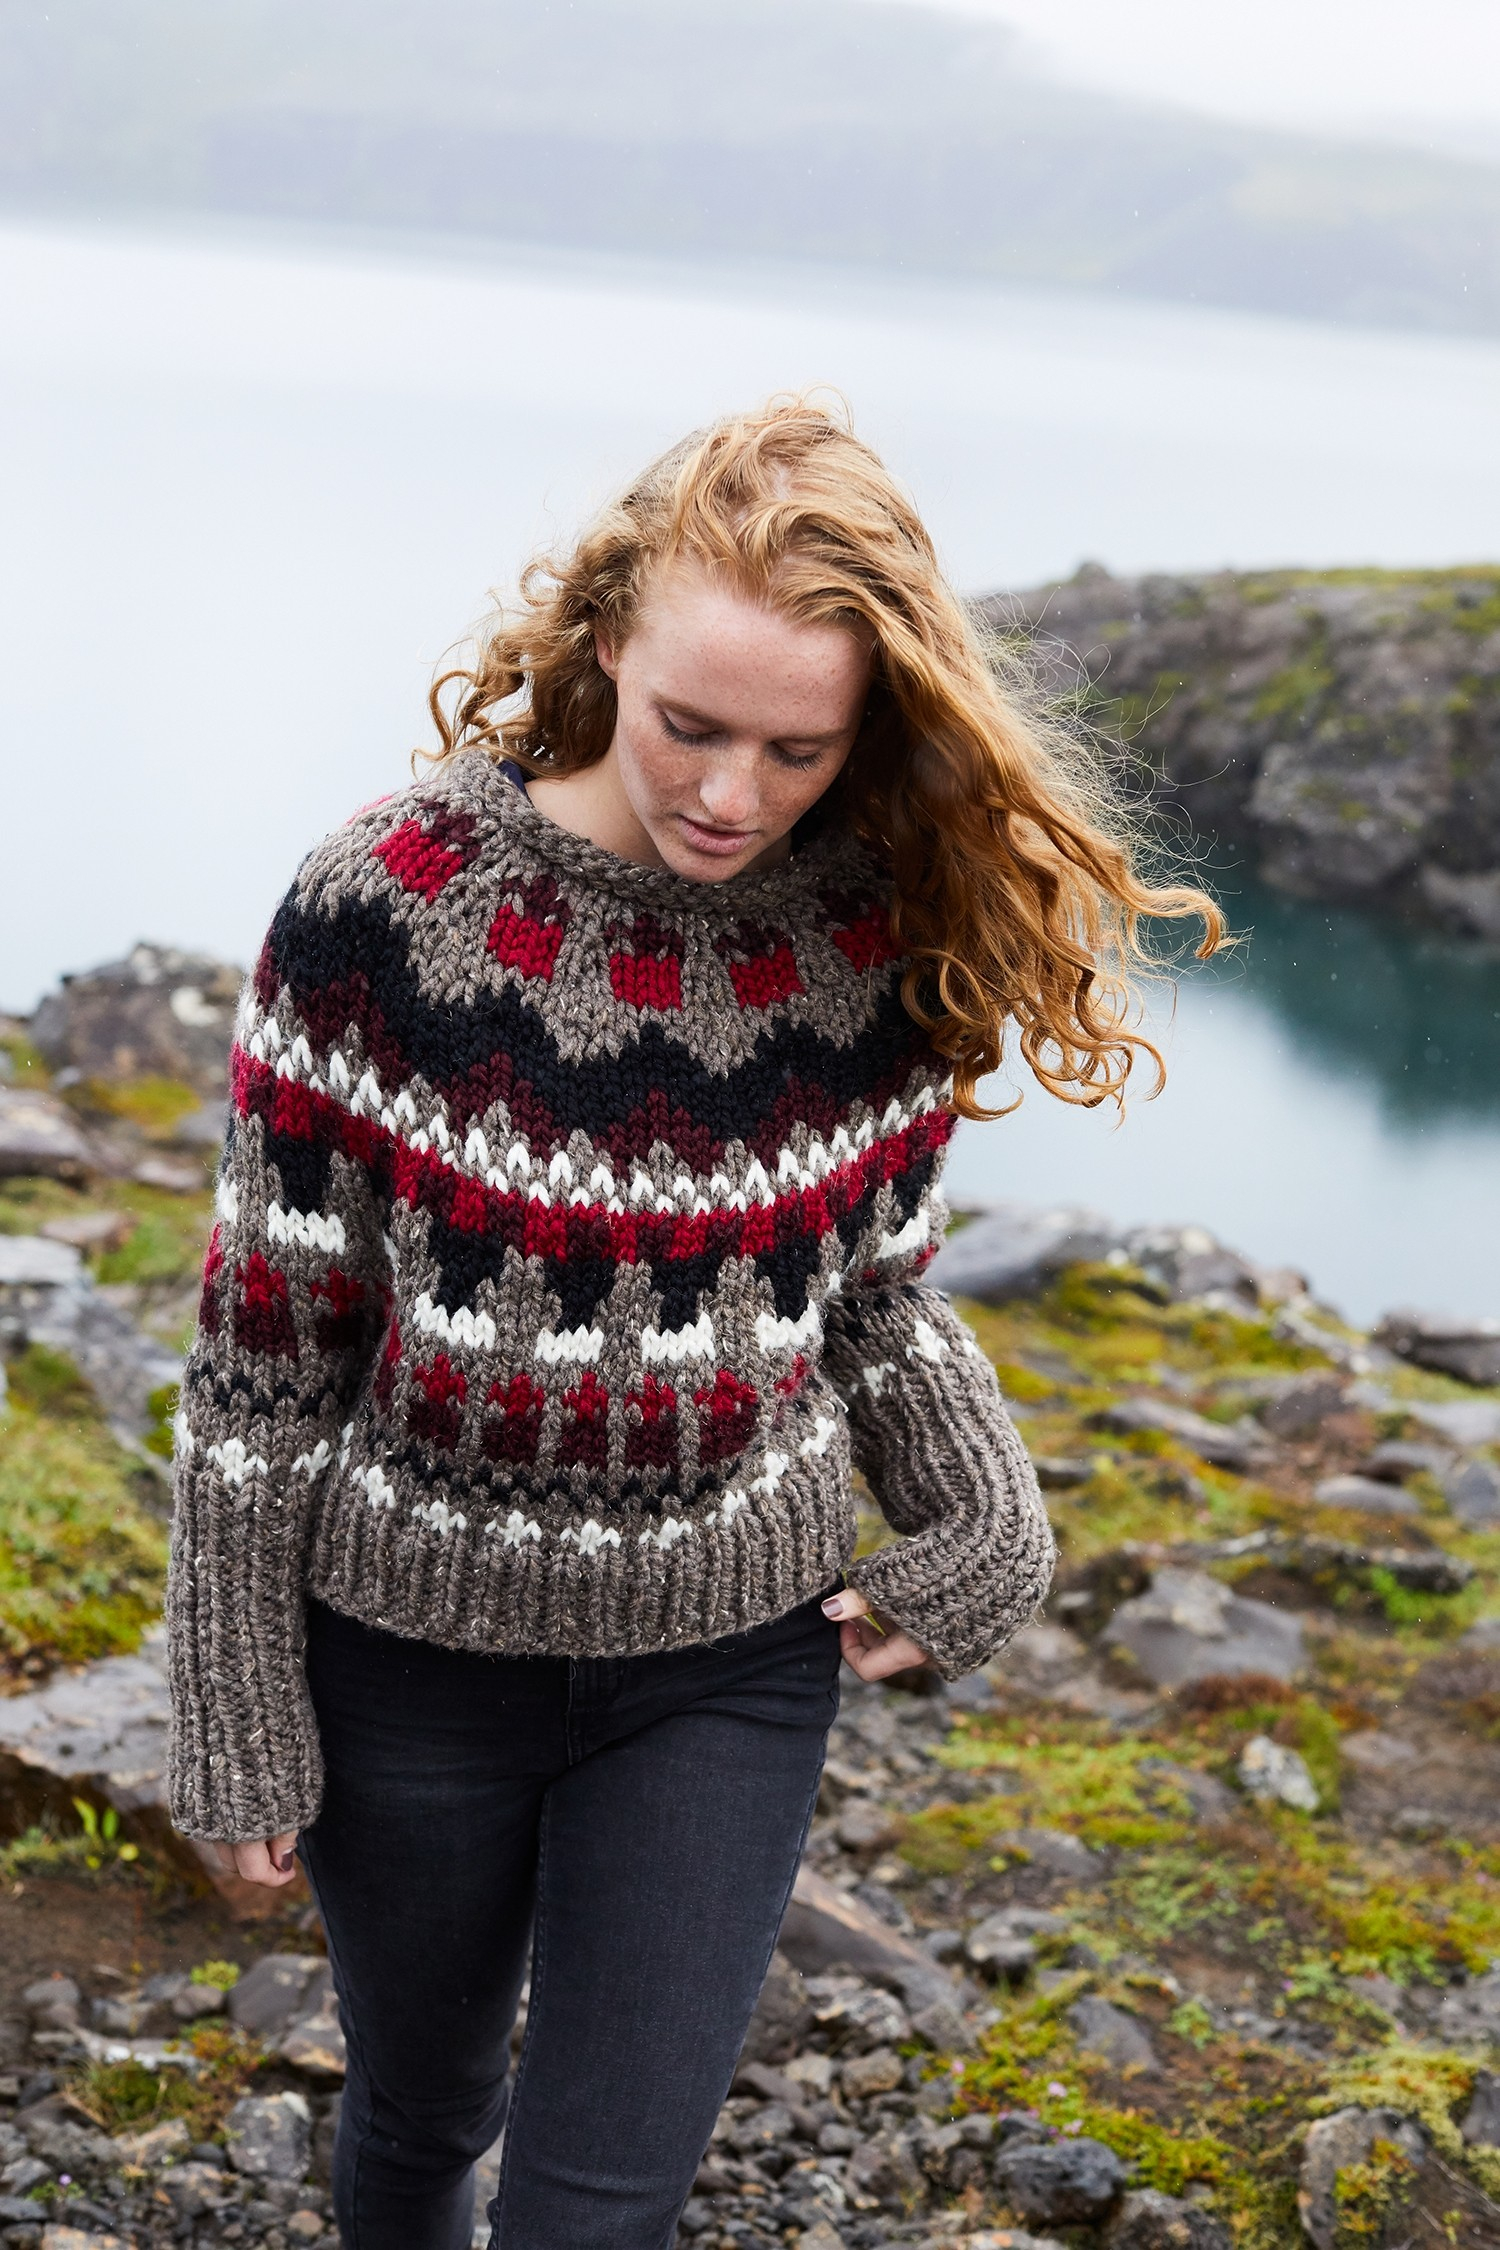 Knitted Pullover Sweater Patterns The Yoke Sweater Trend In 13 Patterns Lion Brand Notebook